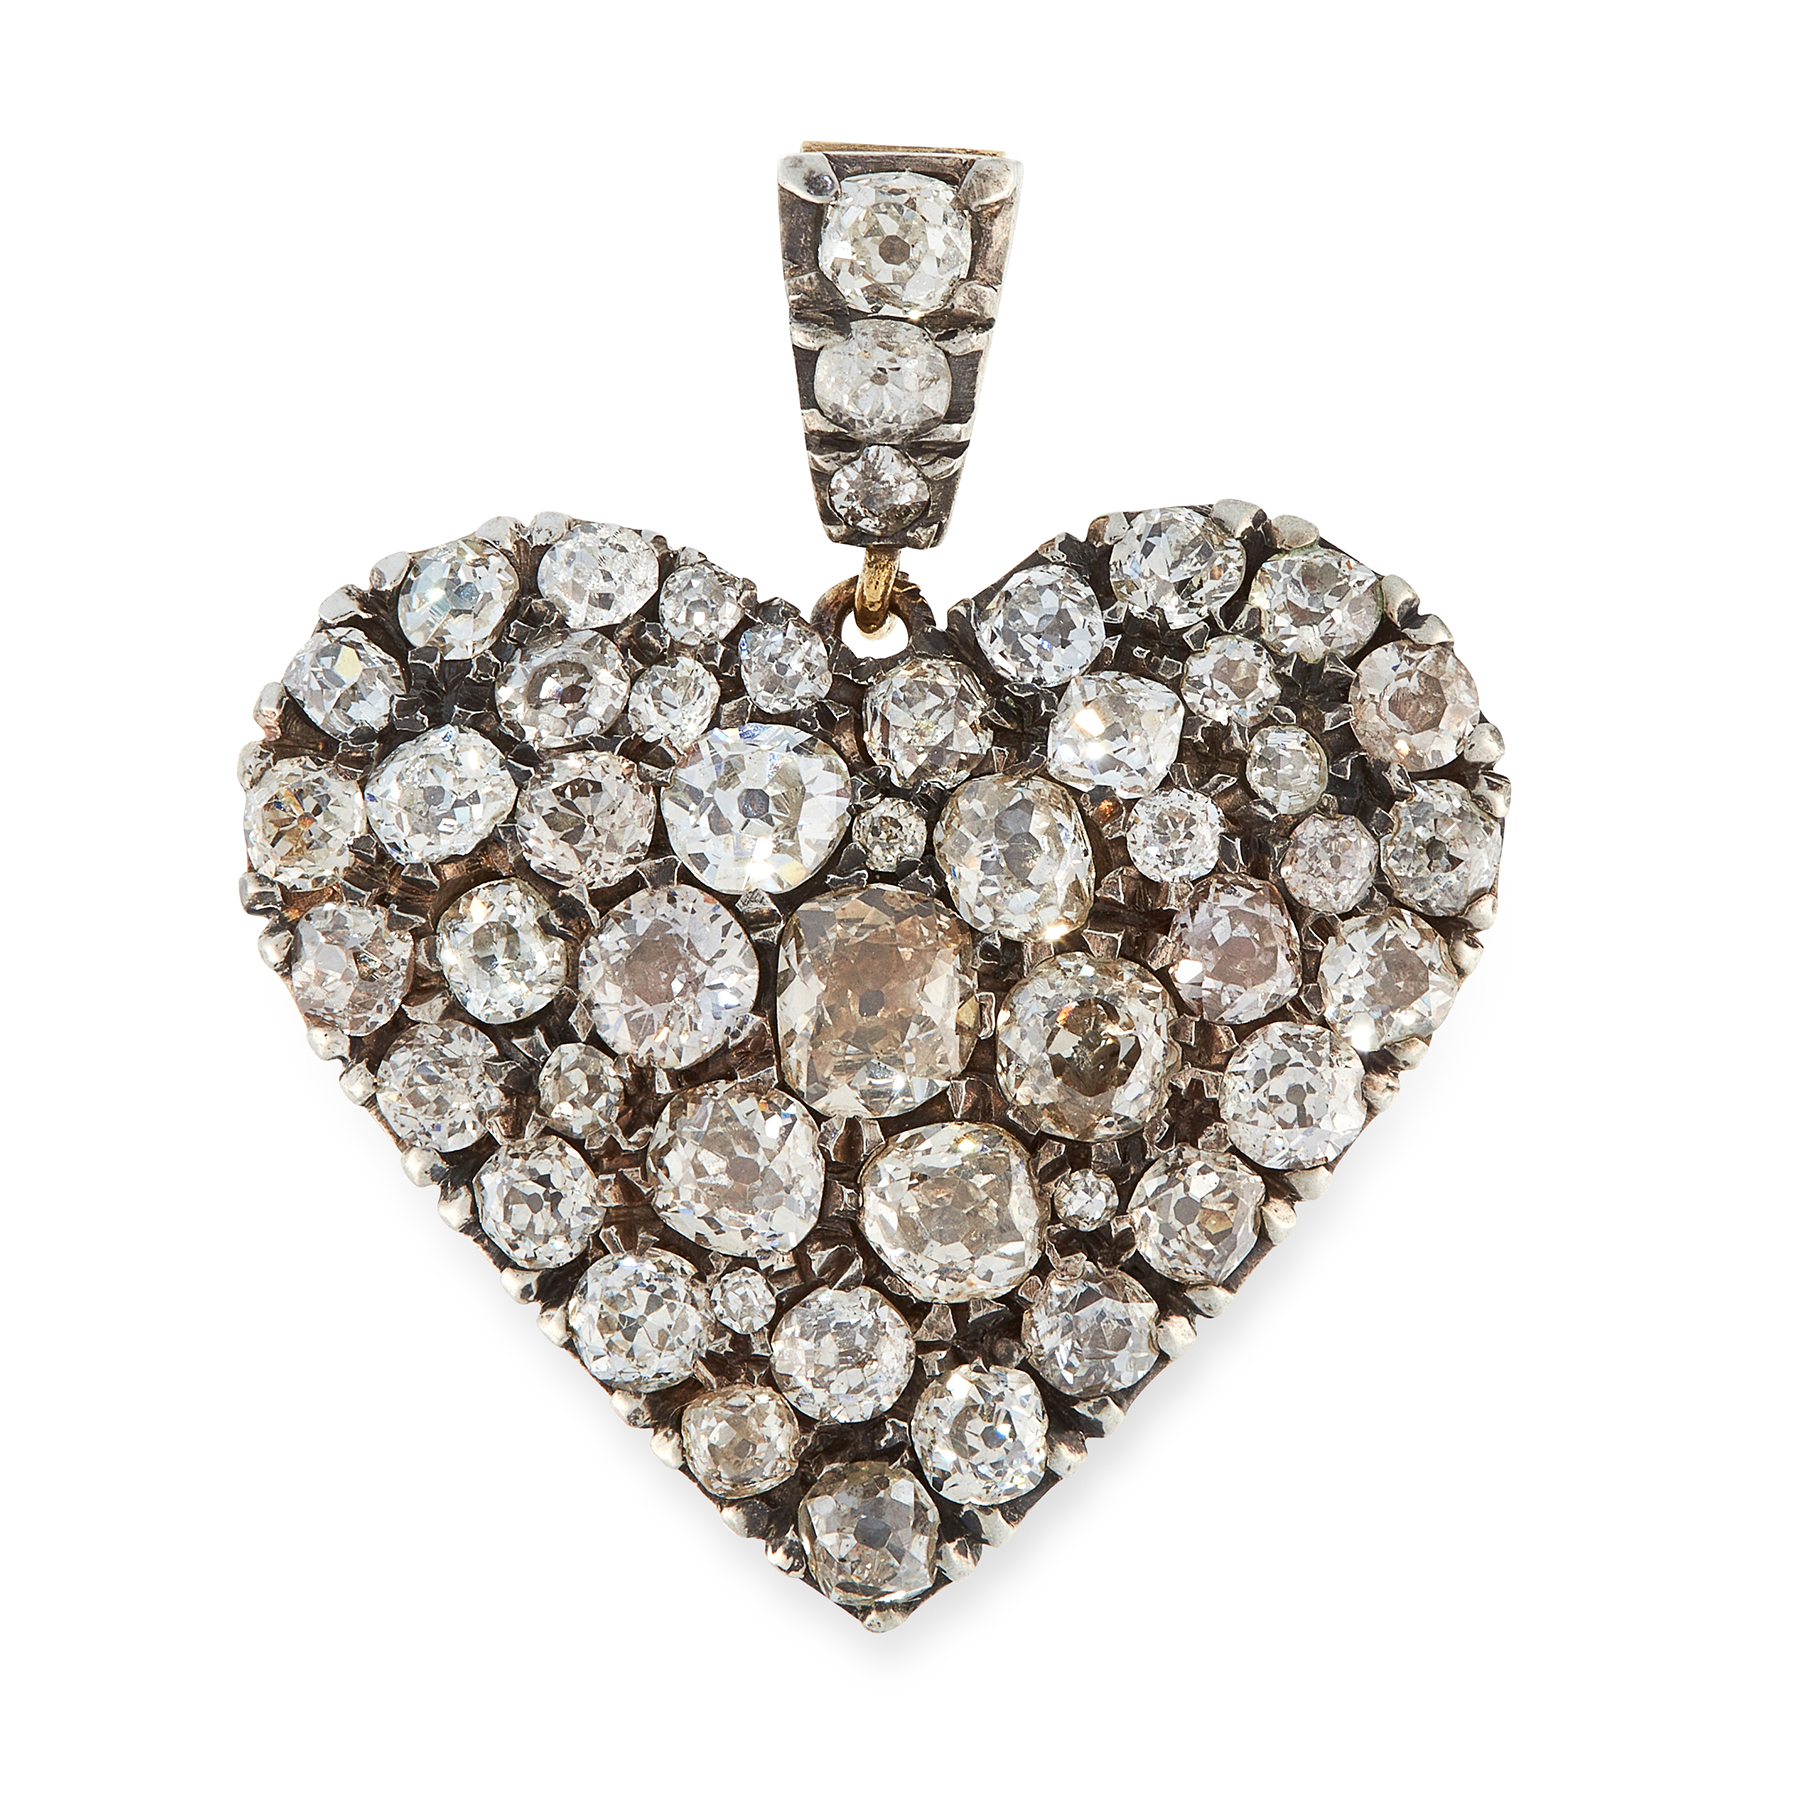 A DIAMOND HEART PENDANT in yellow gold and silver, designed as a heart, set allover to the front